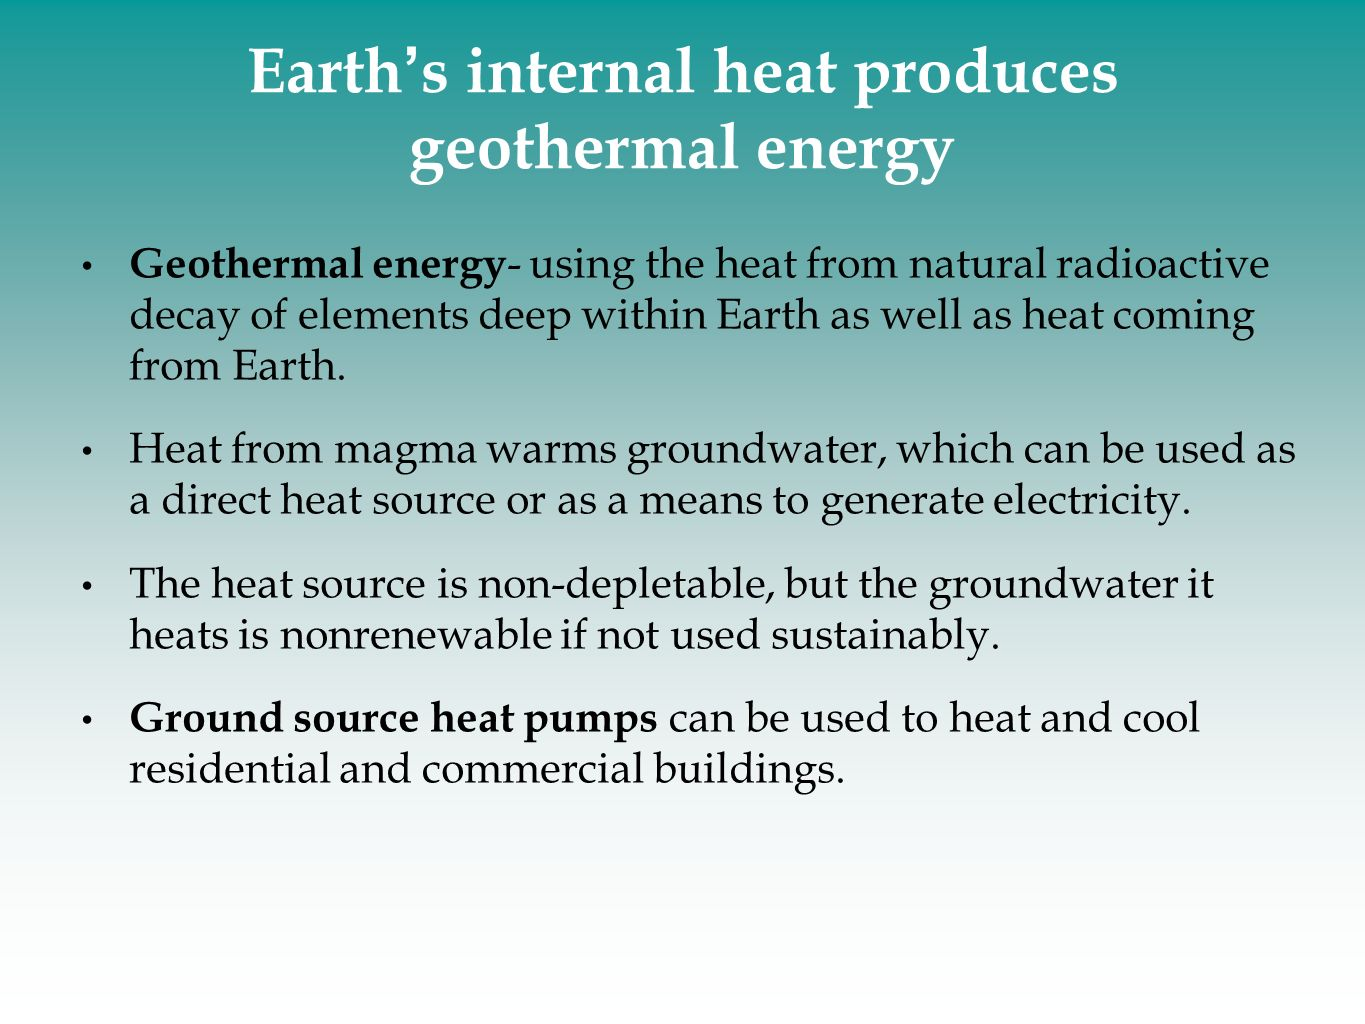 Earth's internal heat produces geothermal energy